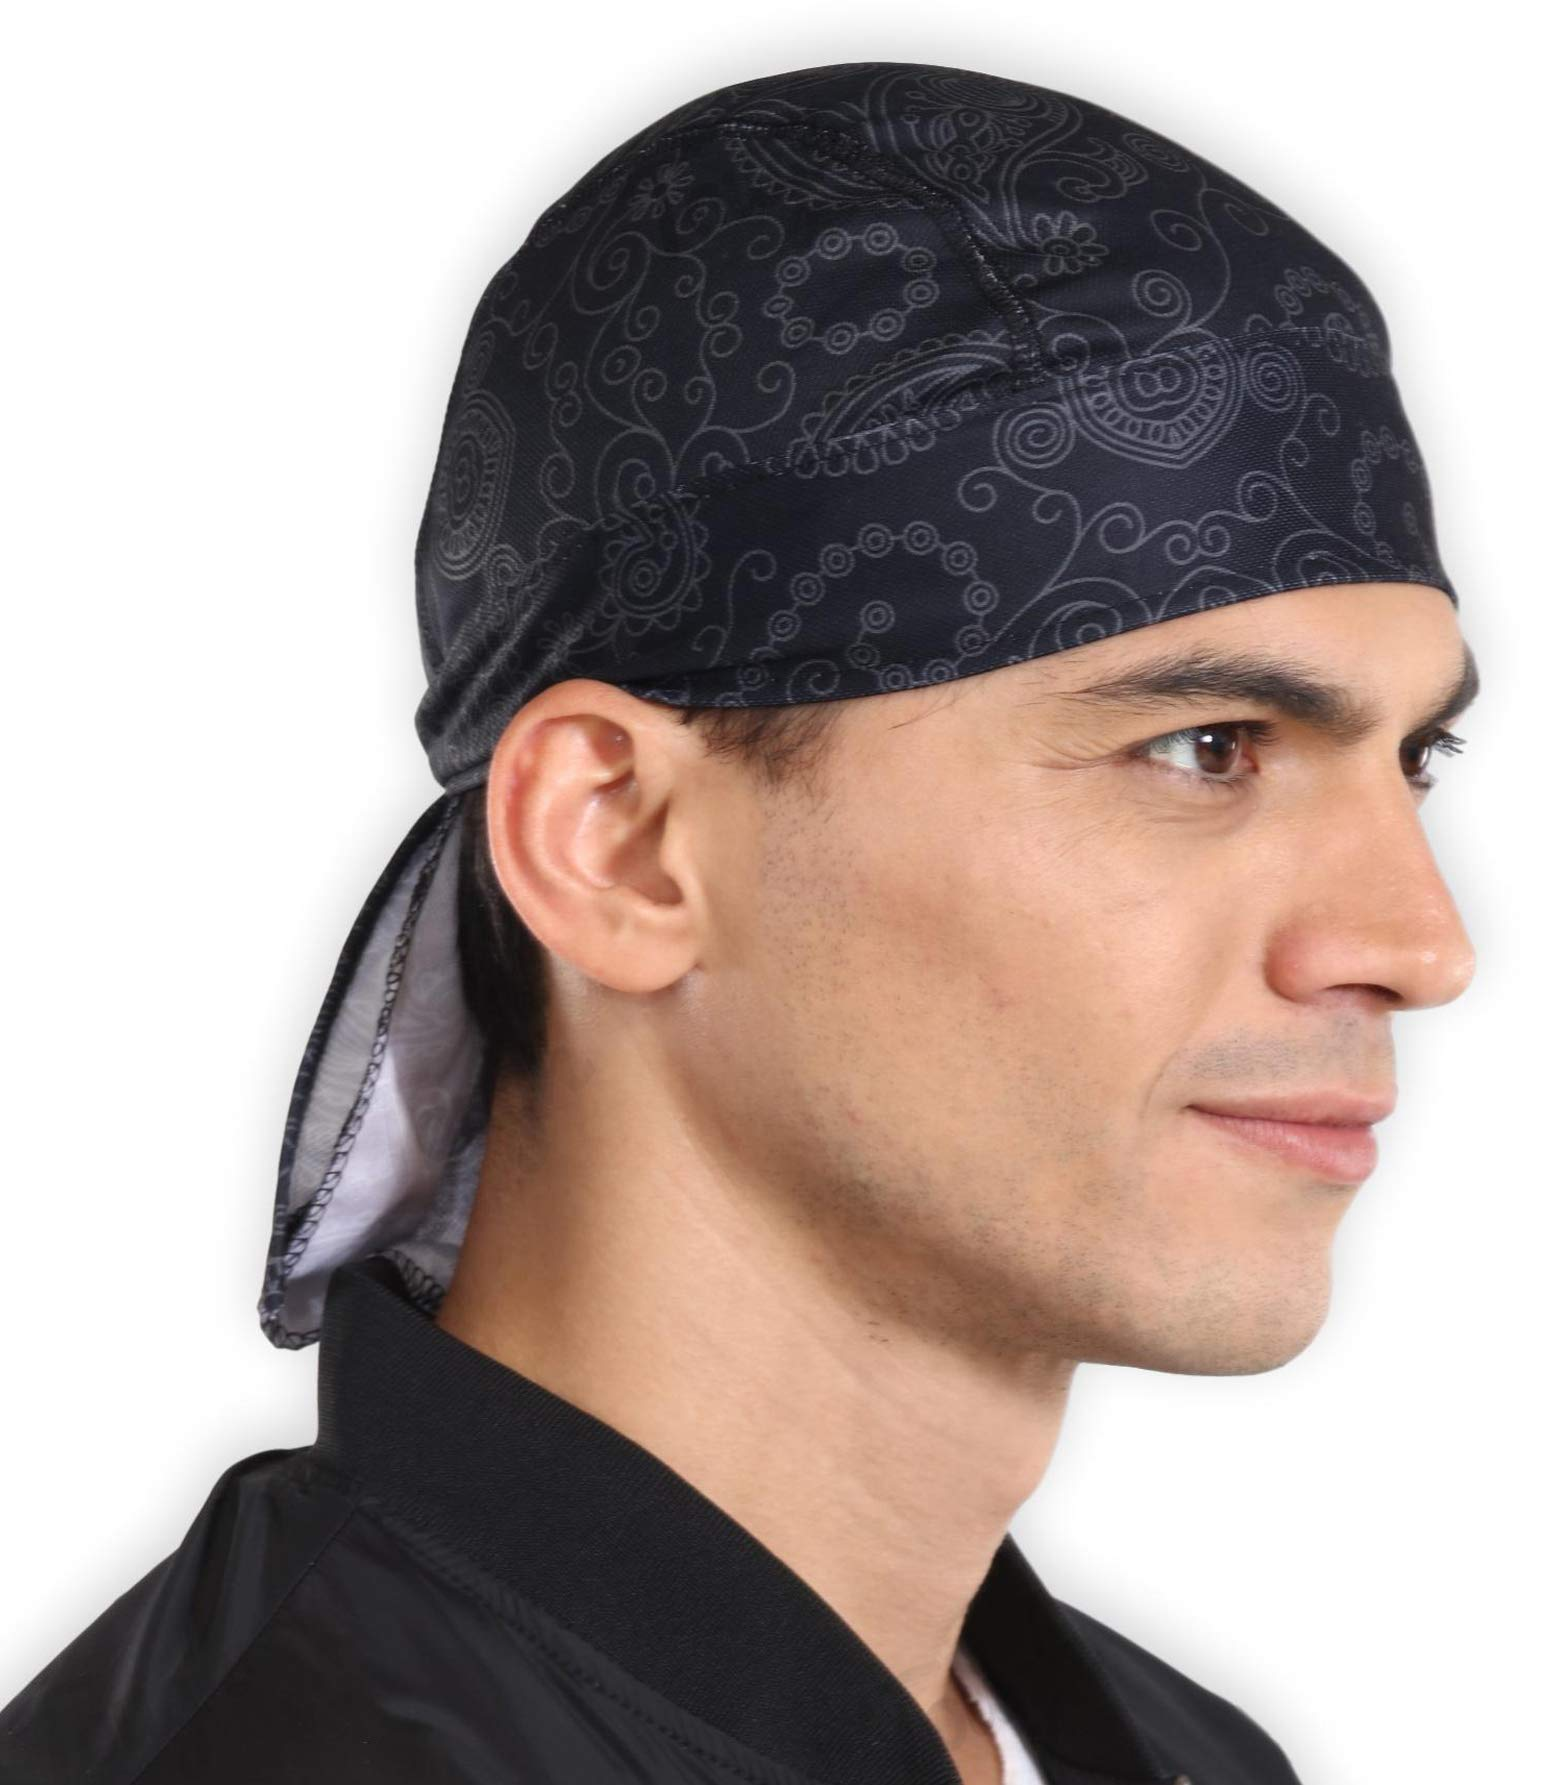 Sweat Wicking Cooling Helmet Liner - Do Rag Skull Cap Beanie for Men & Women. Pirate Hat Bandana & Head Wrap for Motorcycling, Running, Hiking, Cooking & Outdoor Activities. Stretchy & Breathable Mesh product image